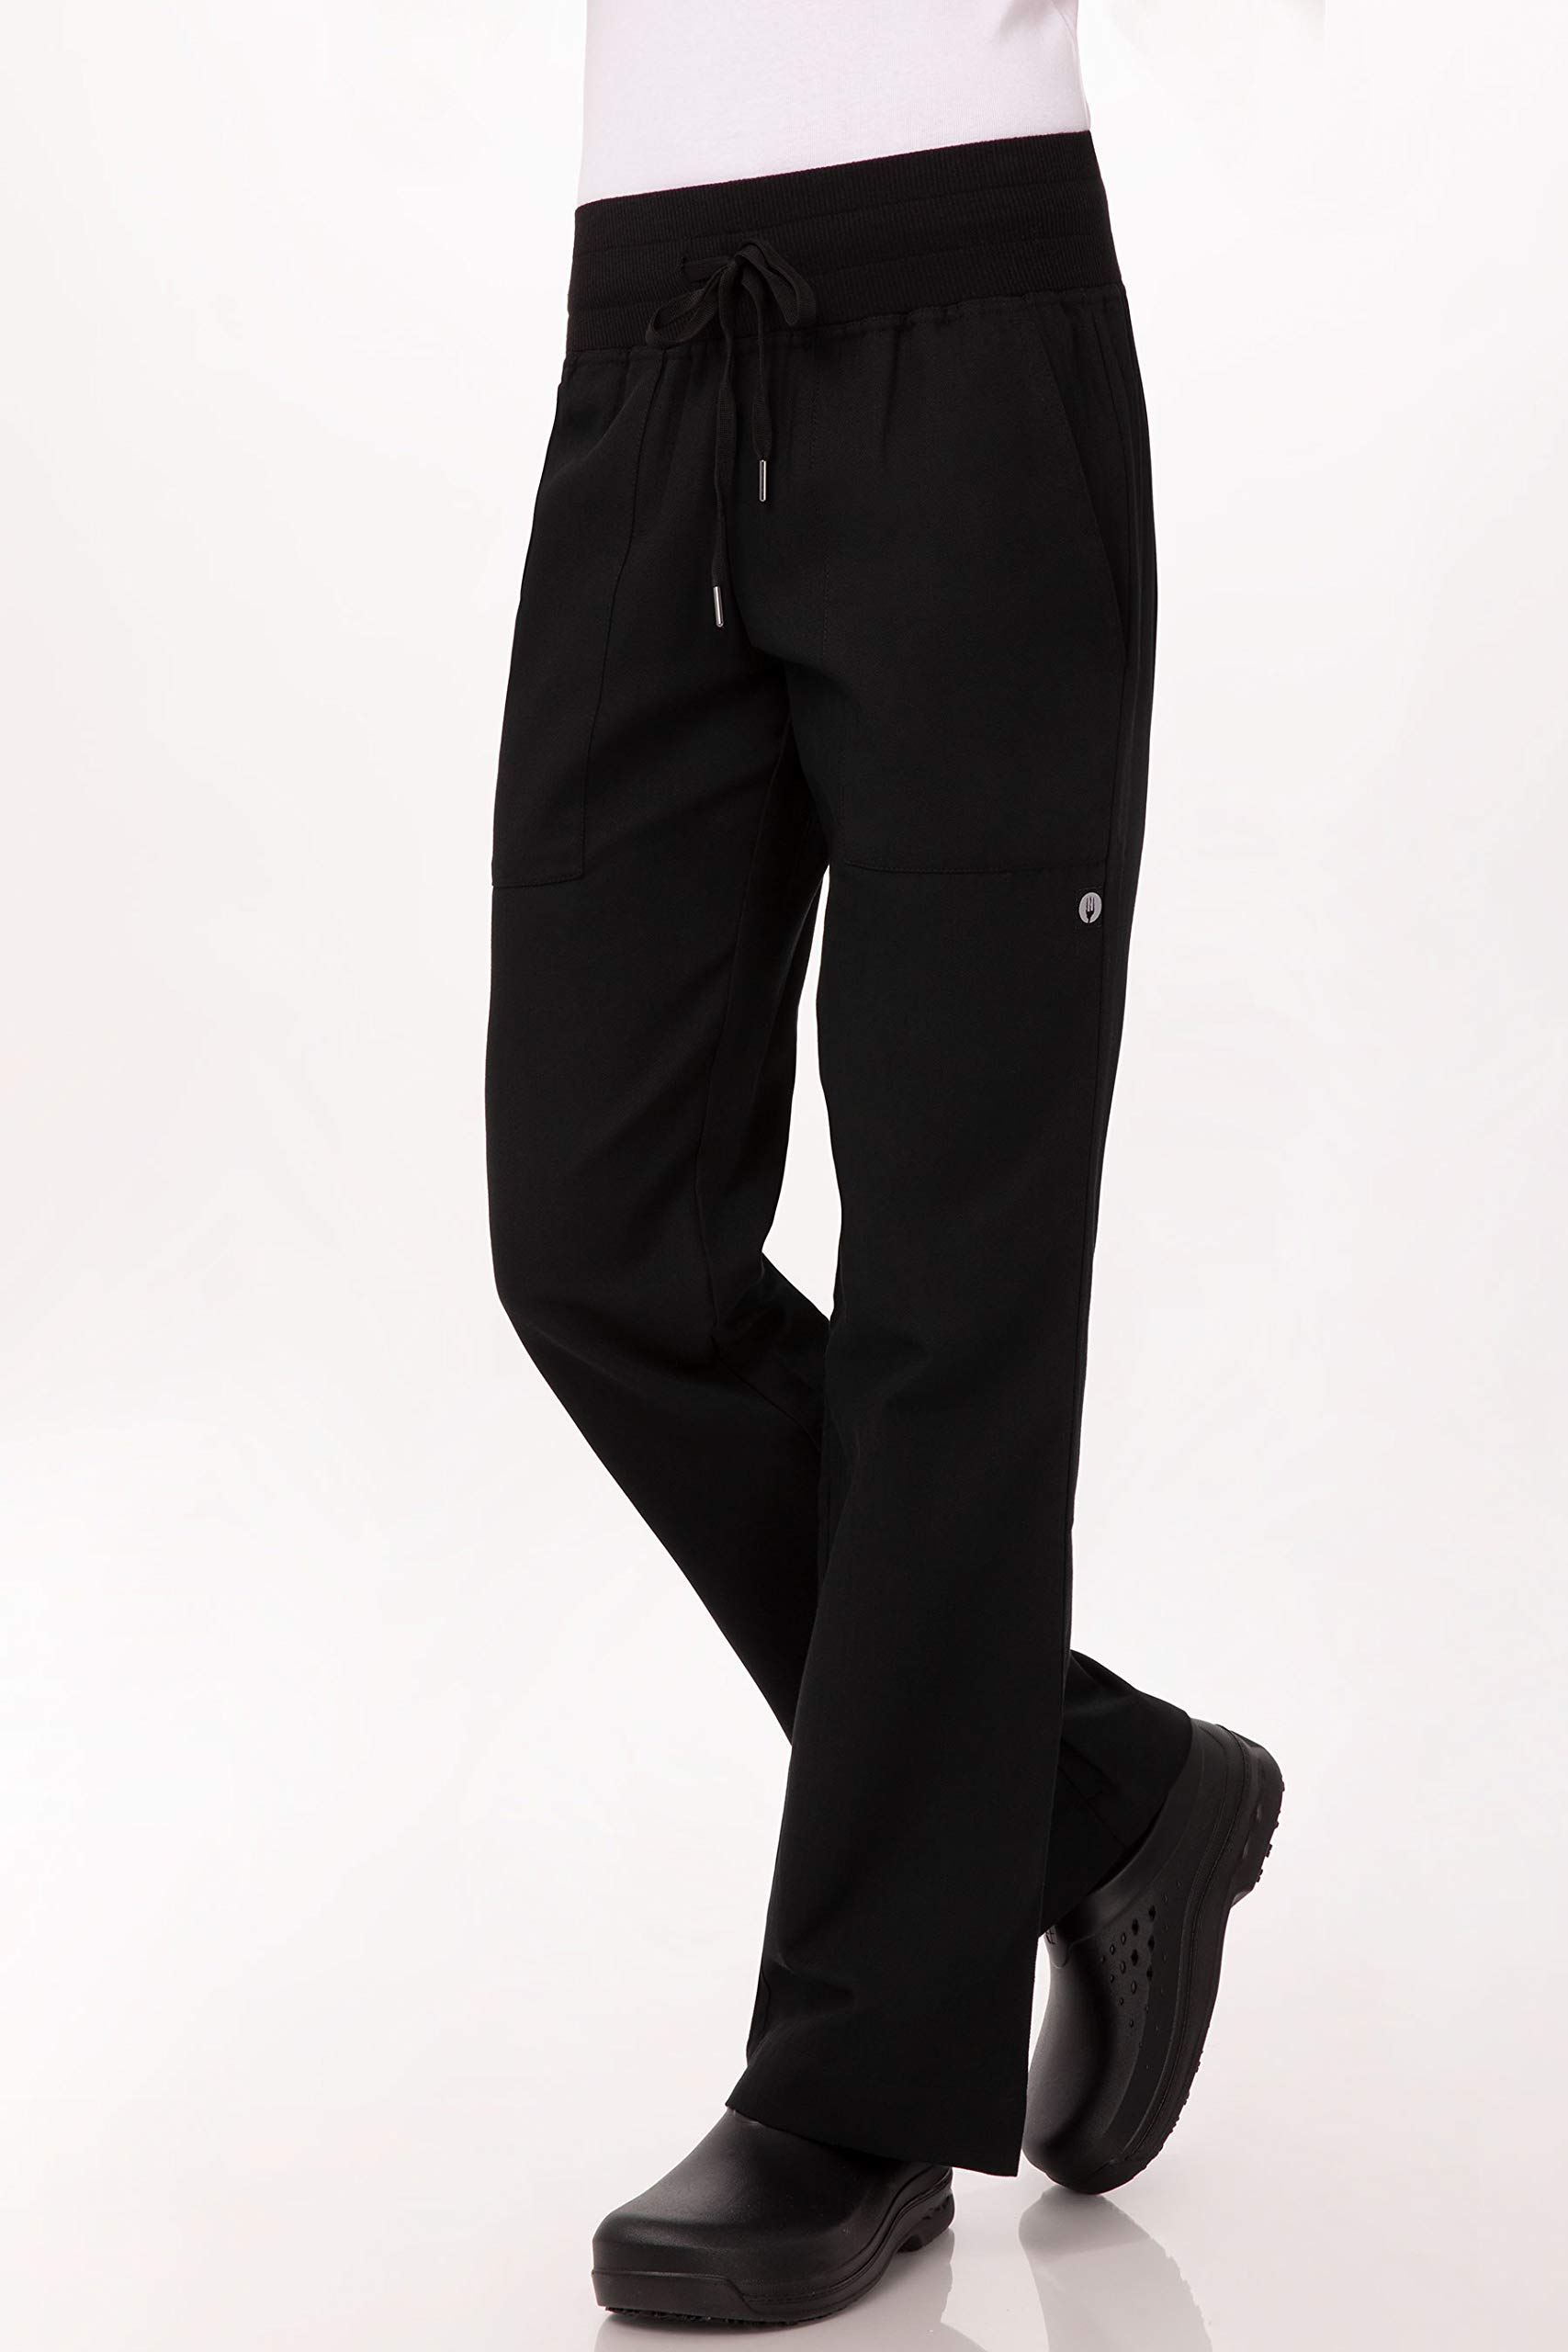 Chef Works Women's Comfi Chef Pants, Black, 2X-Large by Chef Works